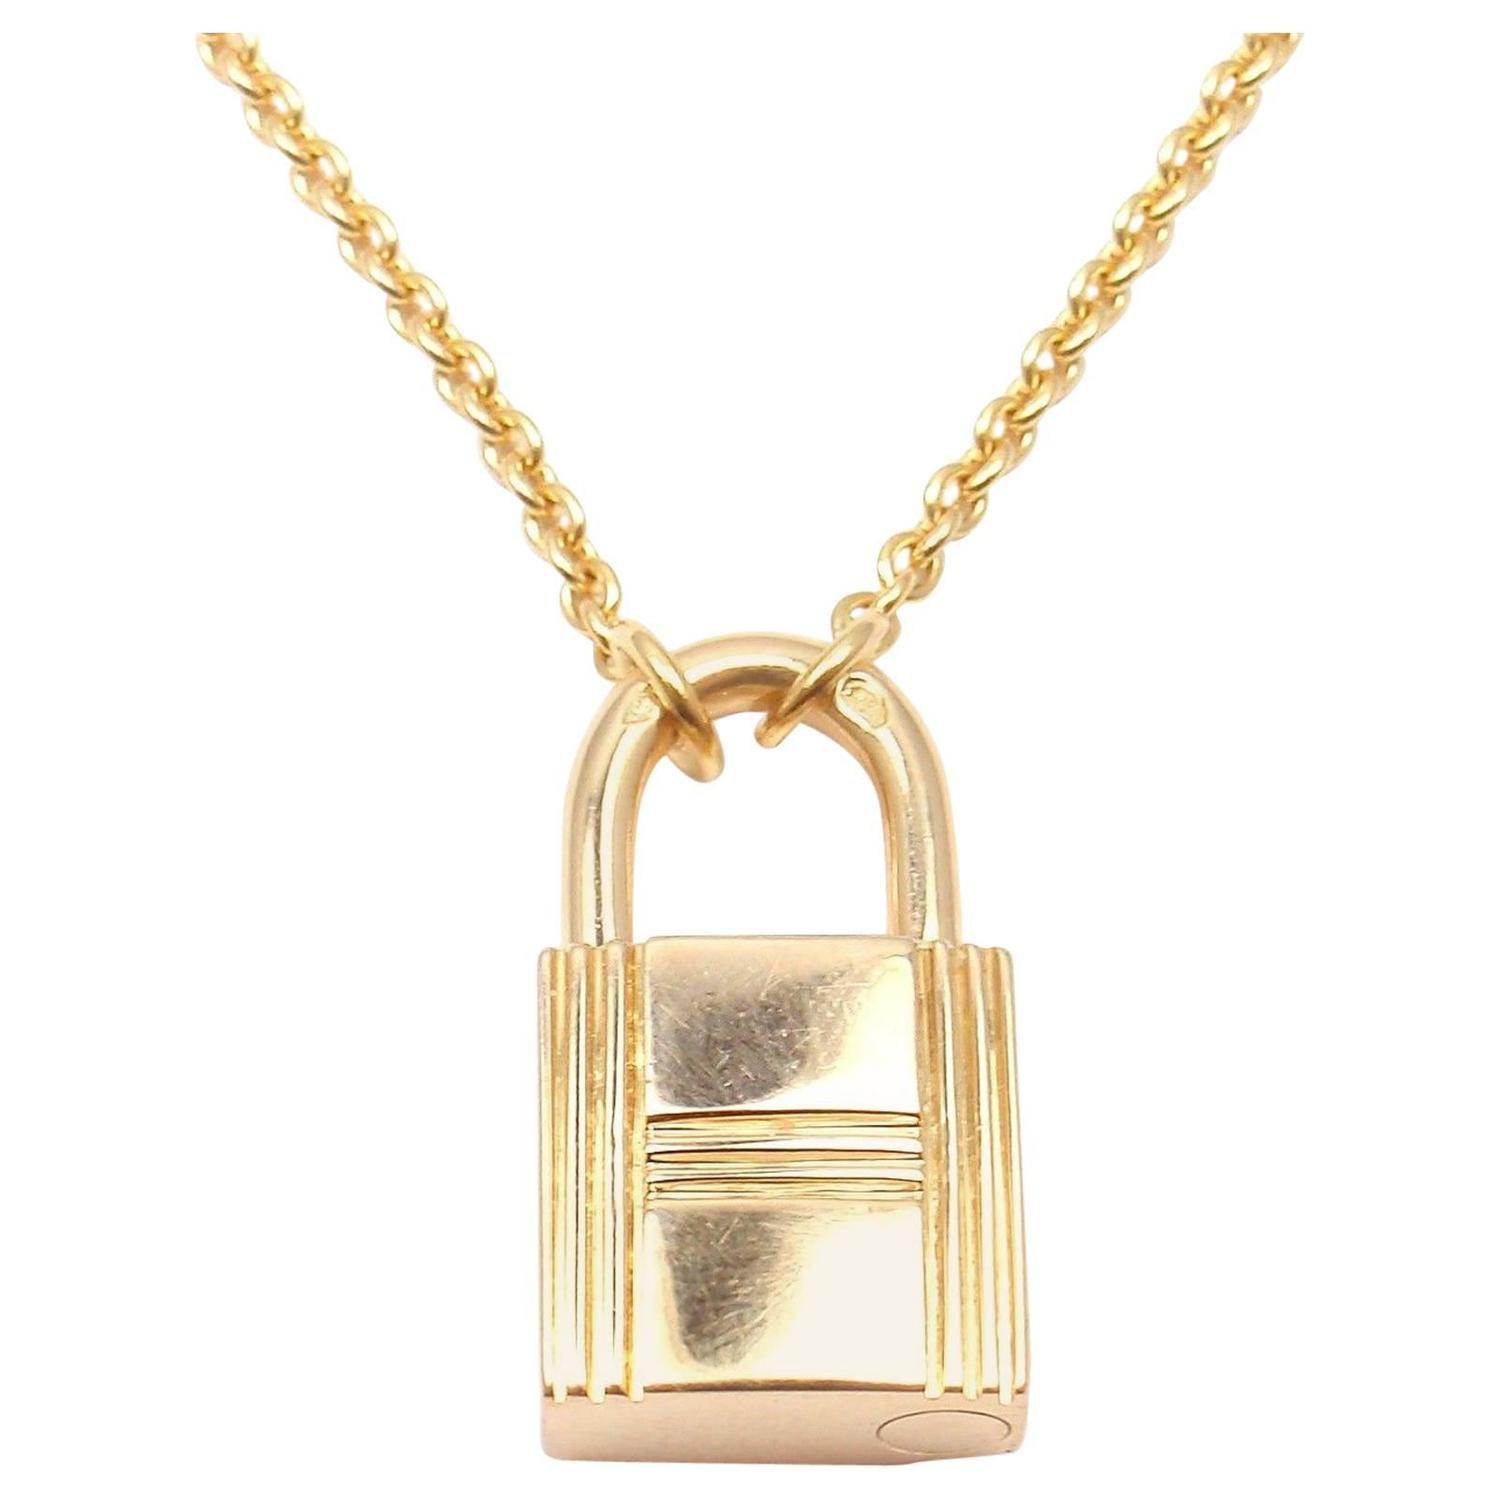 Yafa signed jewels new york ny 1stdibs page 4 - Hermes Paris Lock Pendant Gold Chain Necklace